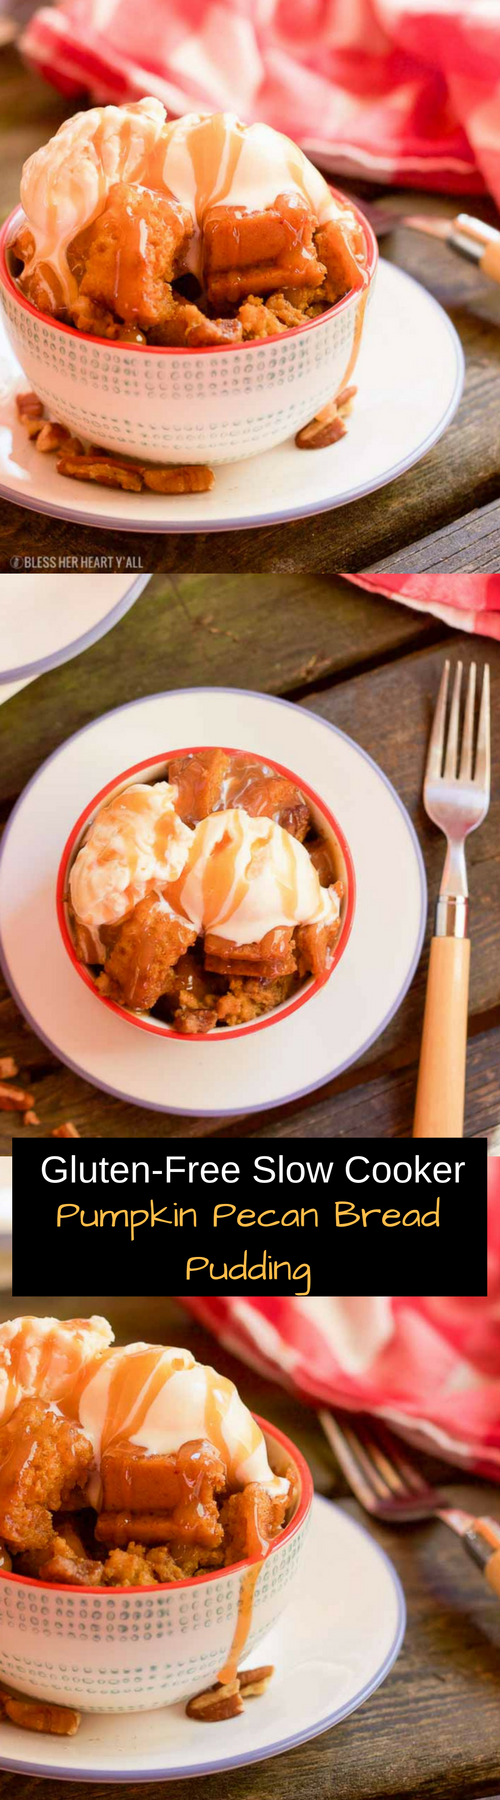 gluten free slow cooker pumpkin pecan bread pudding